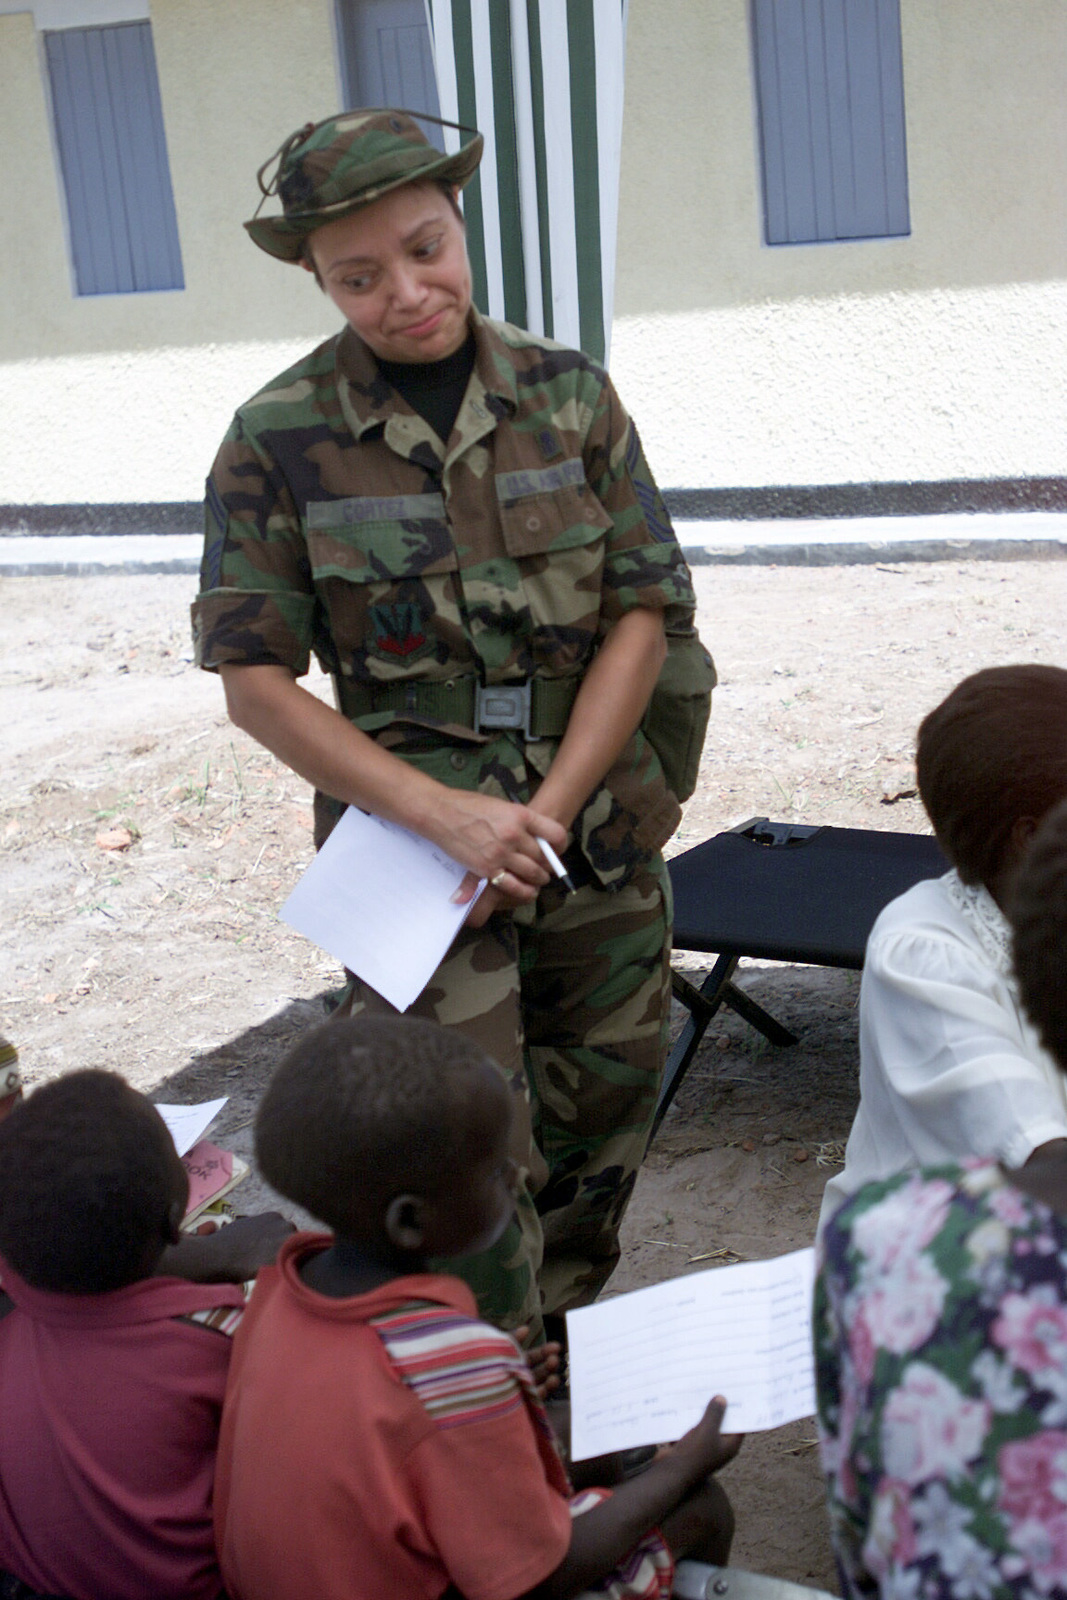 US Air Force (USAF) Major (MAJ) Brenda Owen assigned to the 52nd Medical Group, Spangdahlem Air Base (AB), Germany, triages patients in support of MEDFLAG 2002